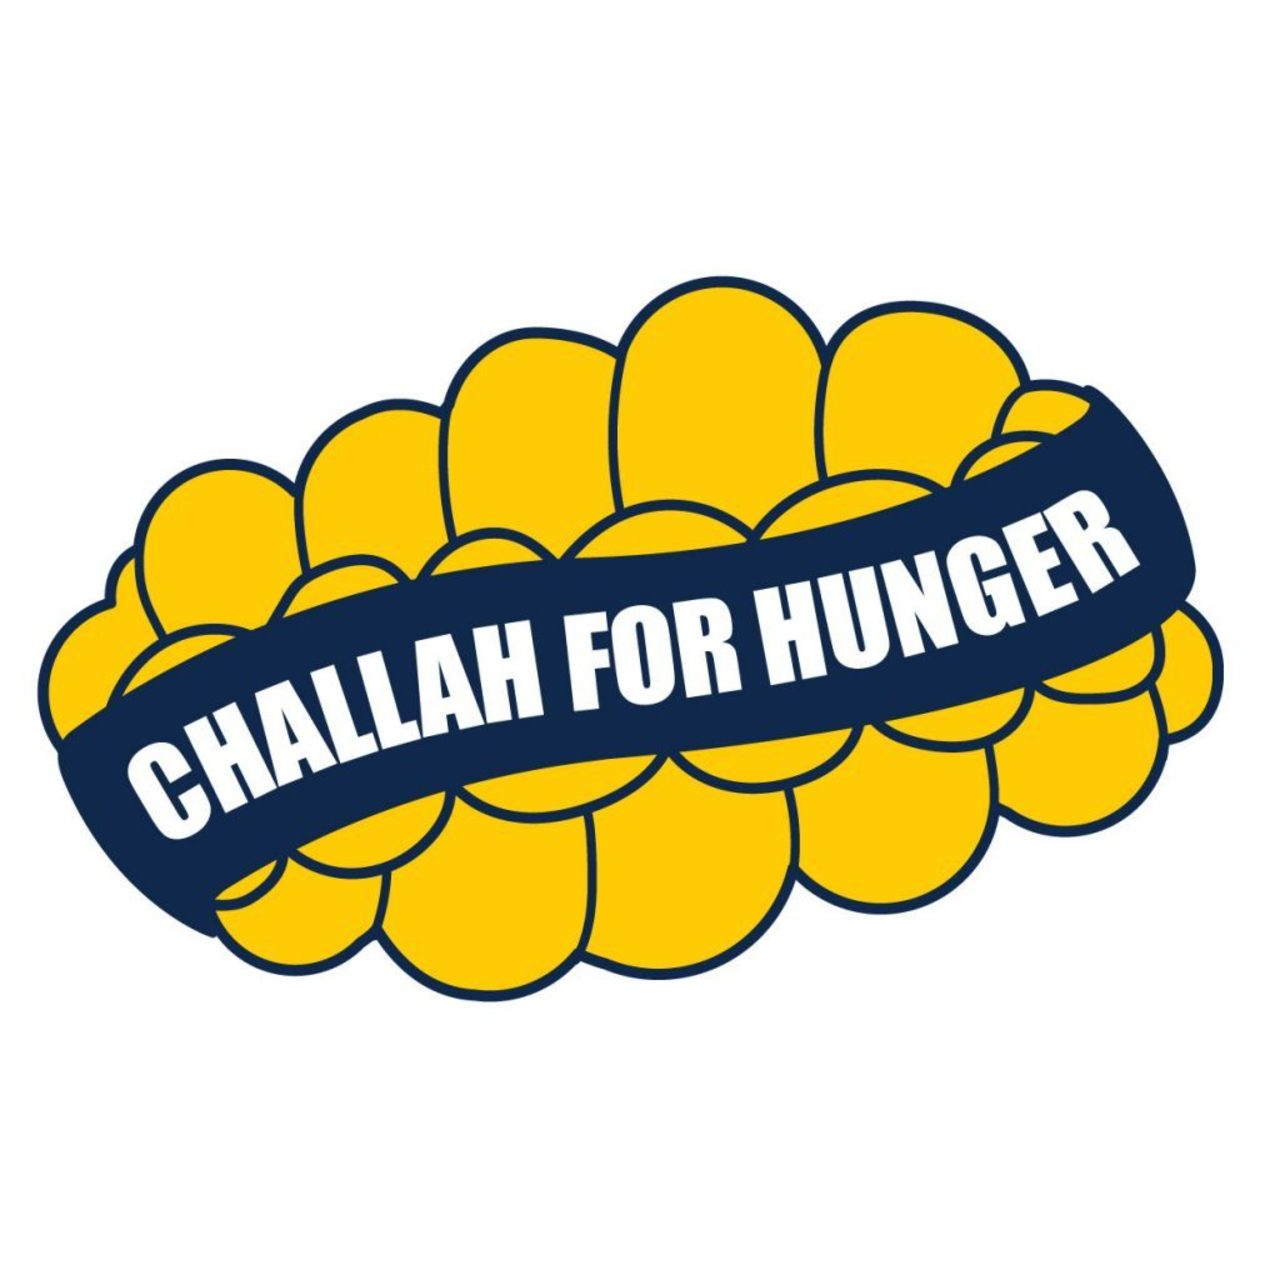 Challah for Hunger Holiday Food Drive